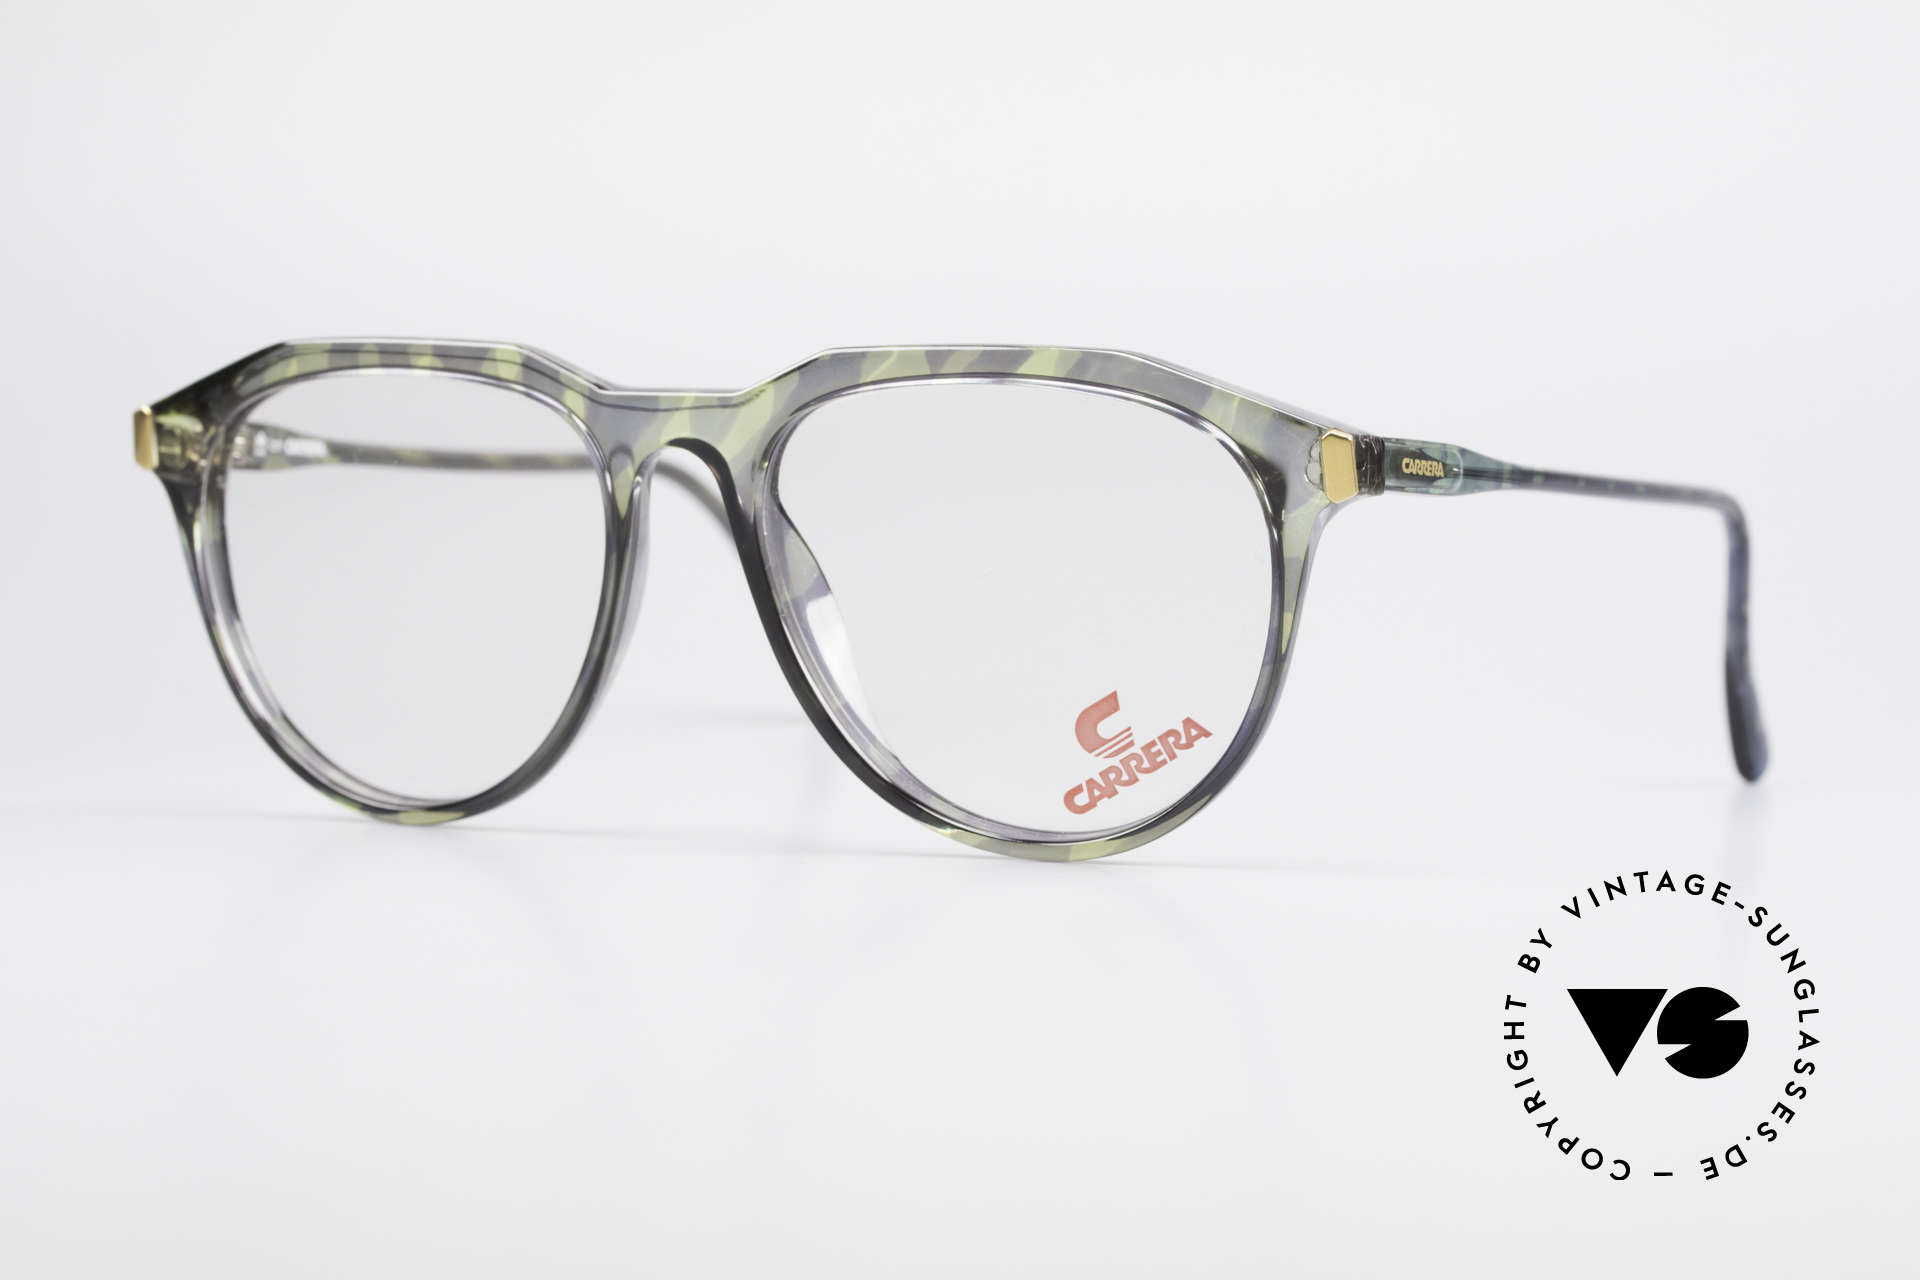 Carrera 5361 90's Optyl Panto Eyeglasses, vintage CARRERA panto eyeglasses from the 90's, Made for Men